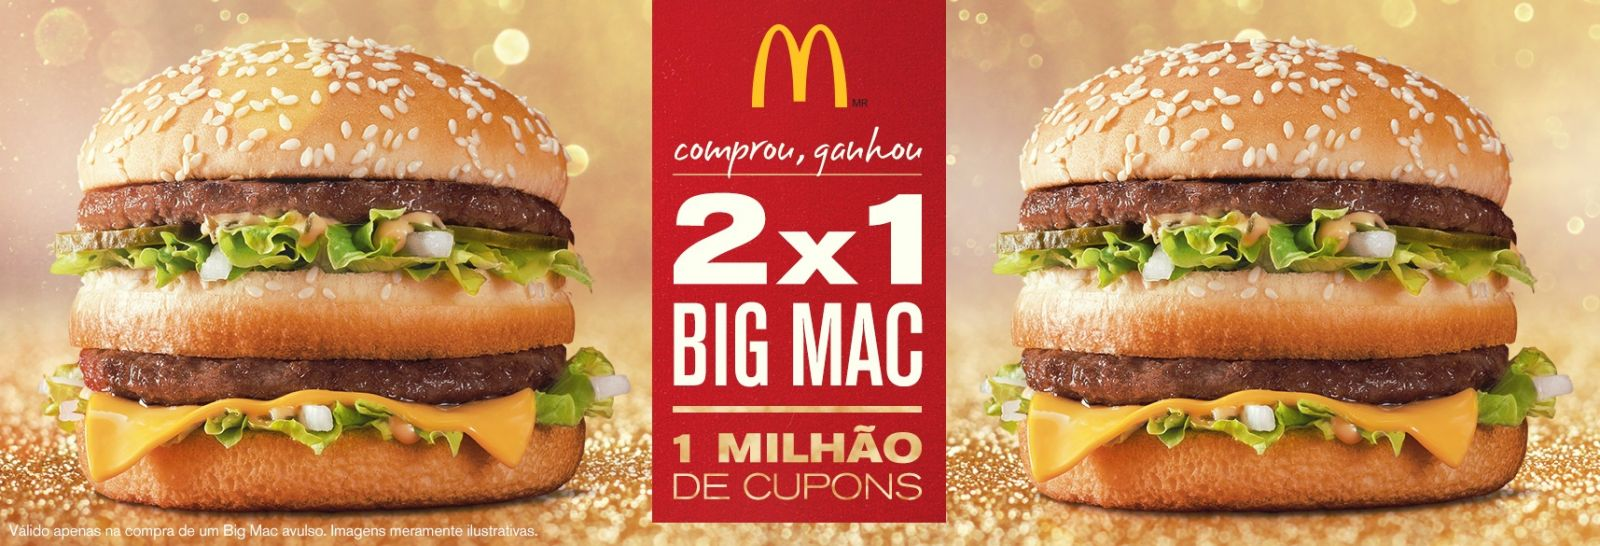 McDonald's, Big Mac, cupom